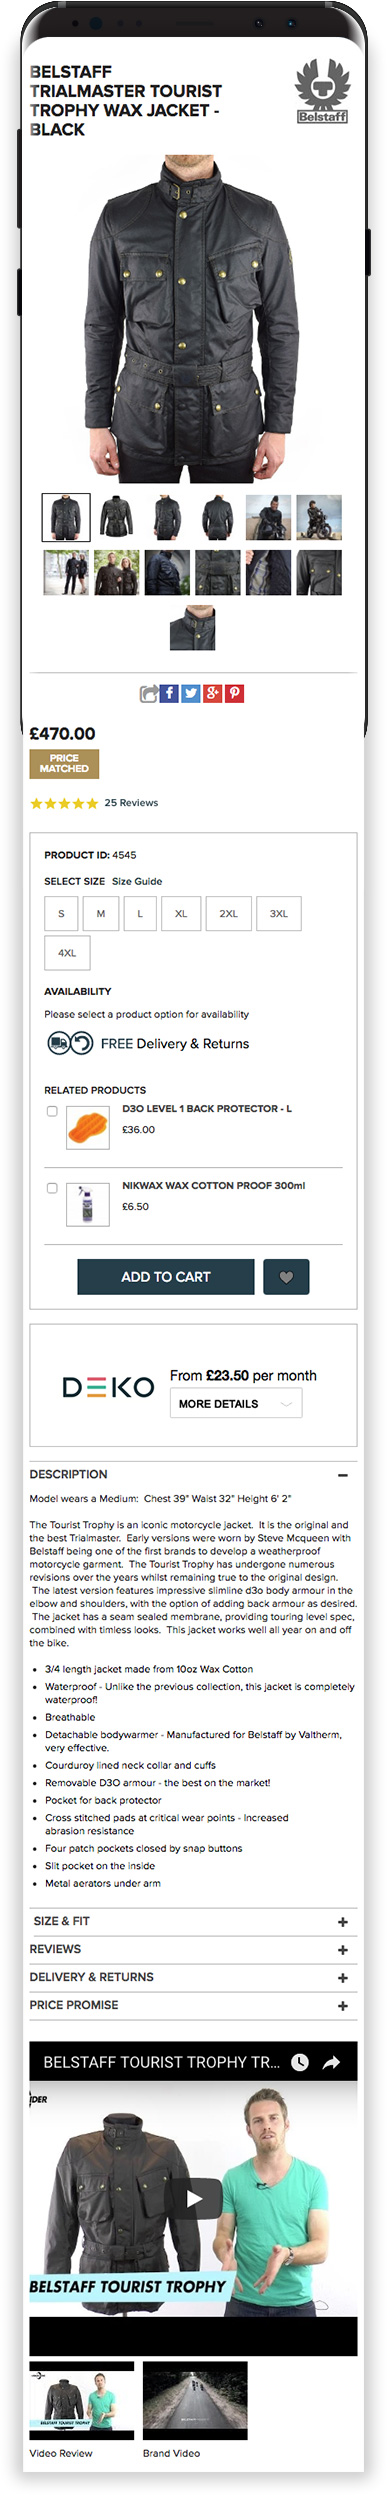 Urban Rider Magento Website on Mobile Device